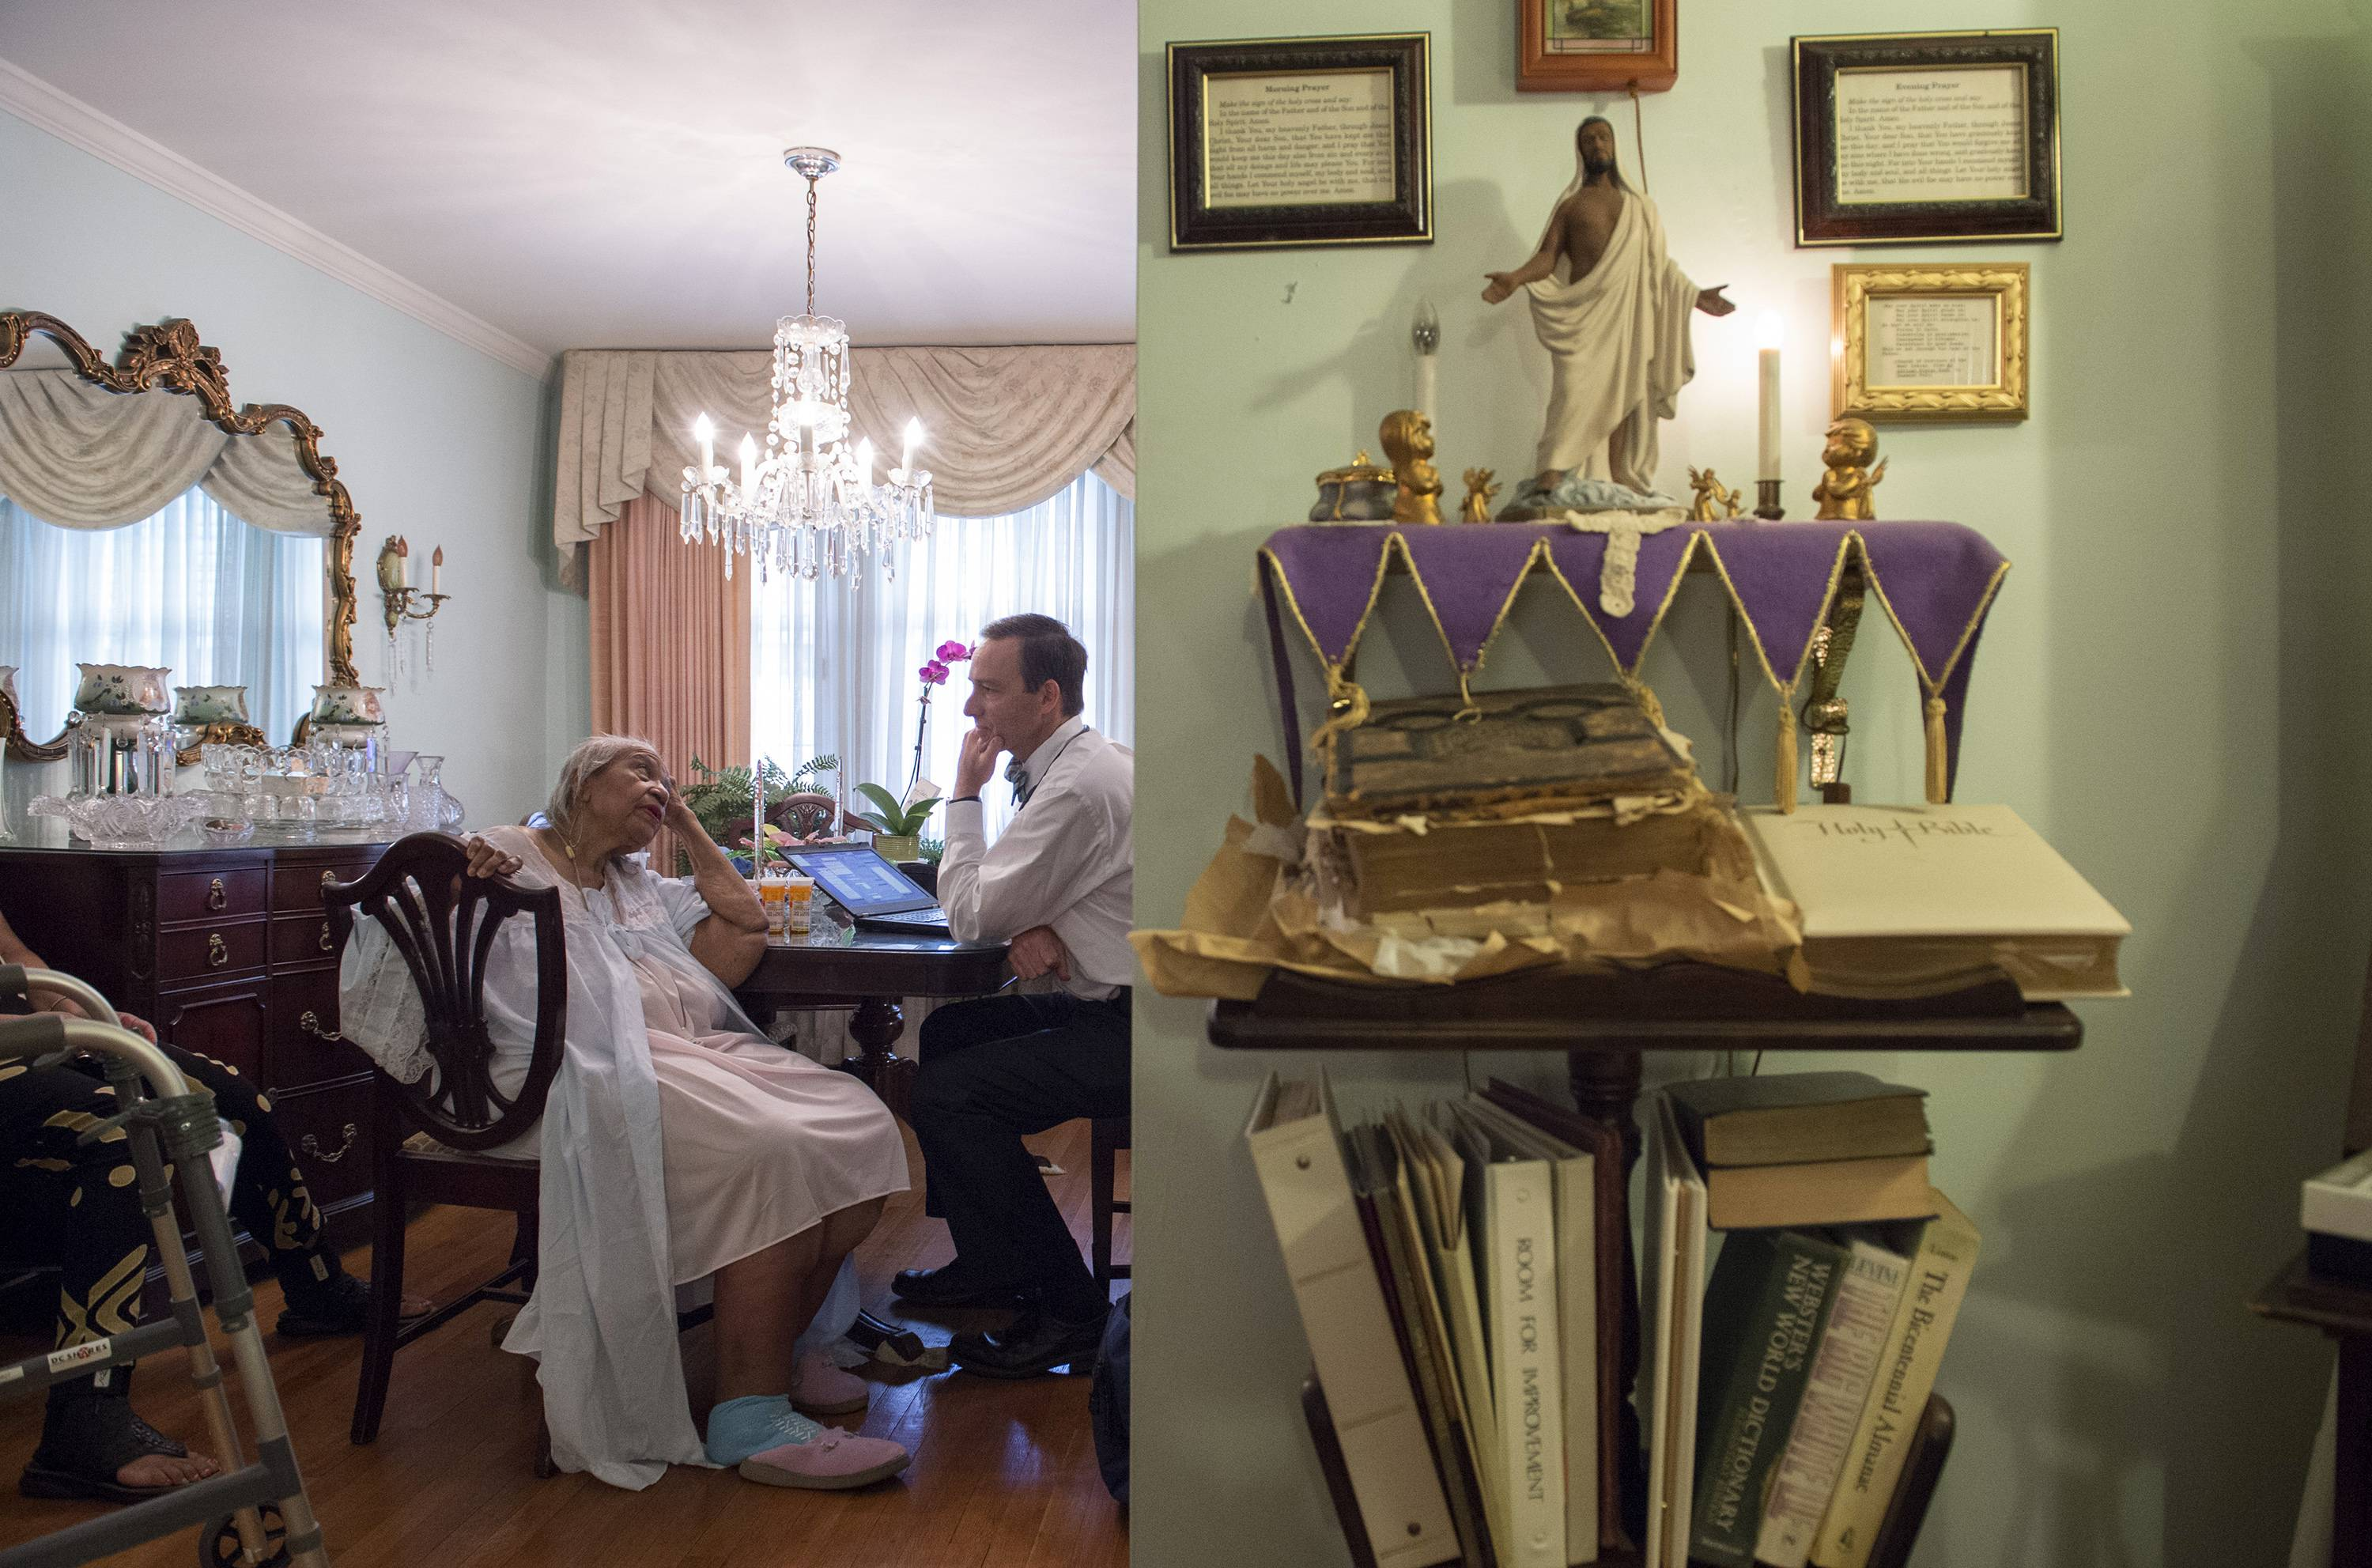 Dr. Eric De Jonge of Washington Hospital Center conducts a Medicare house call at the home of patient Beatrice Adams.